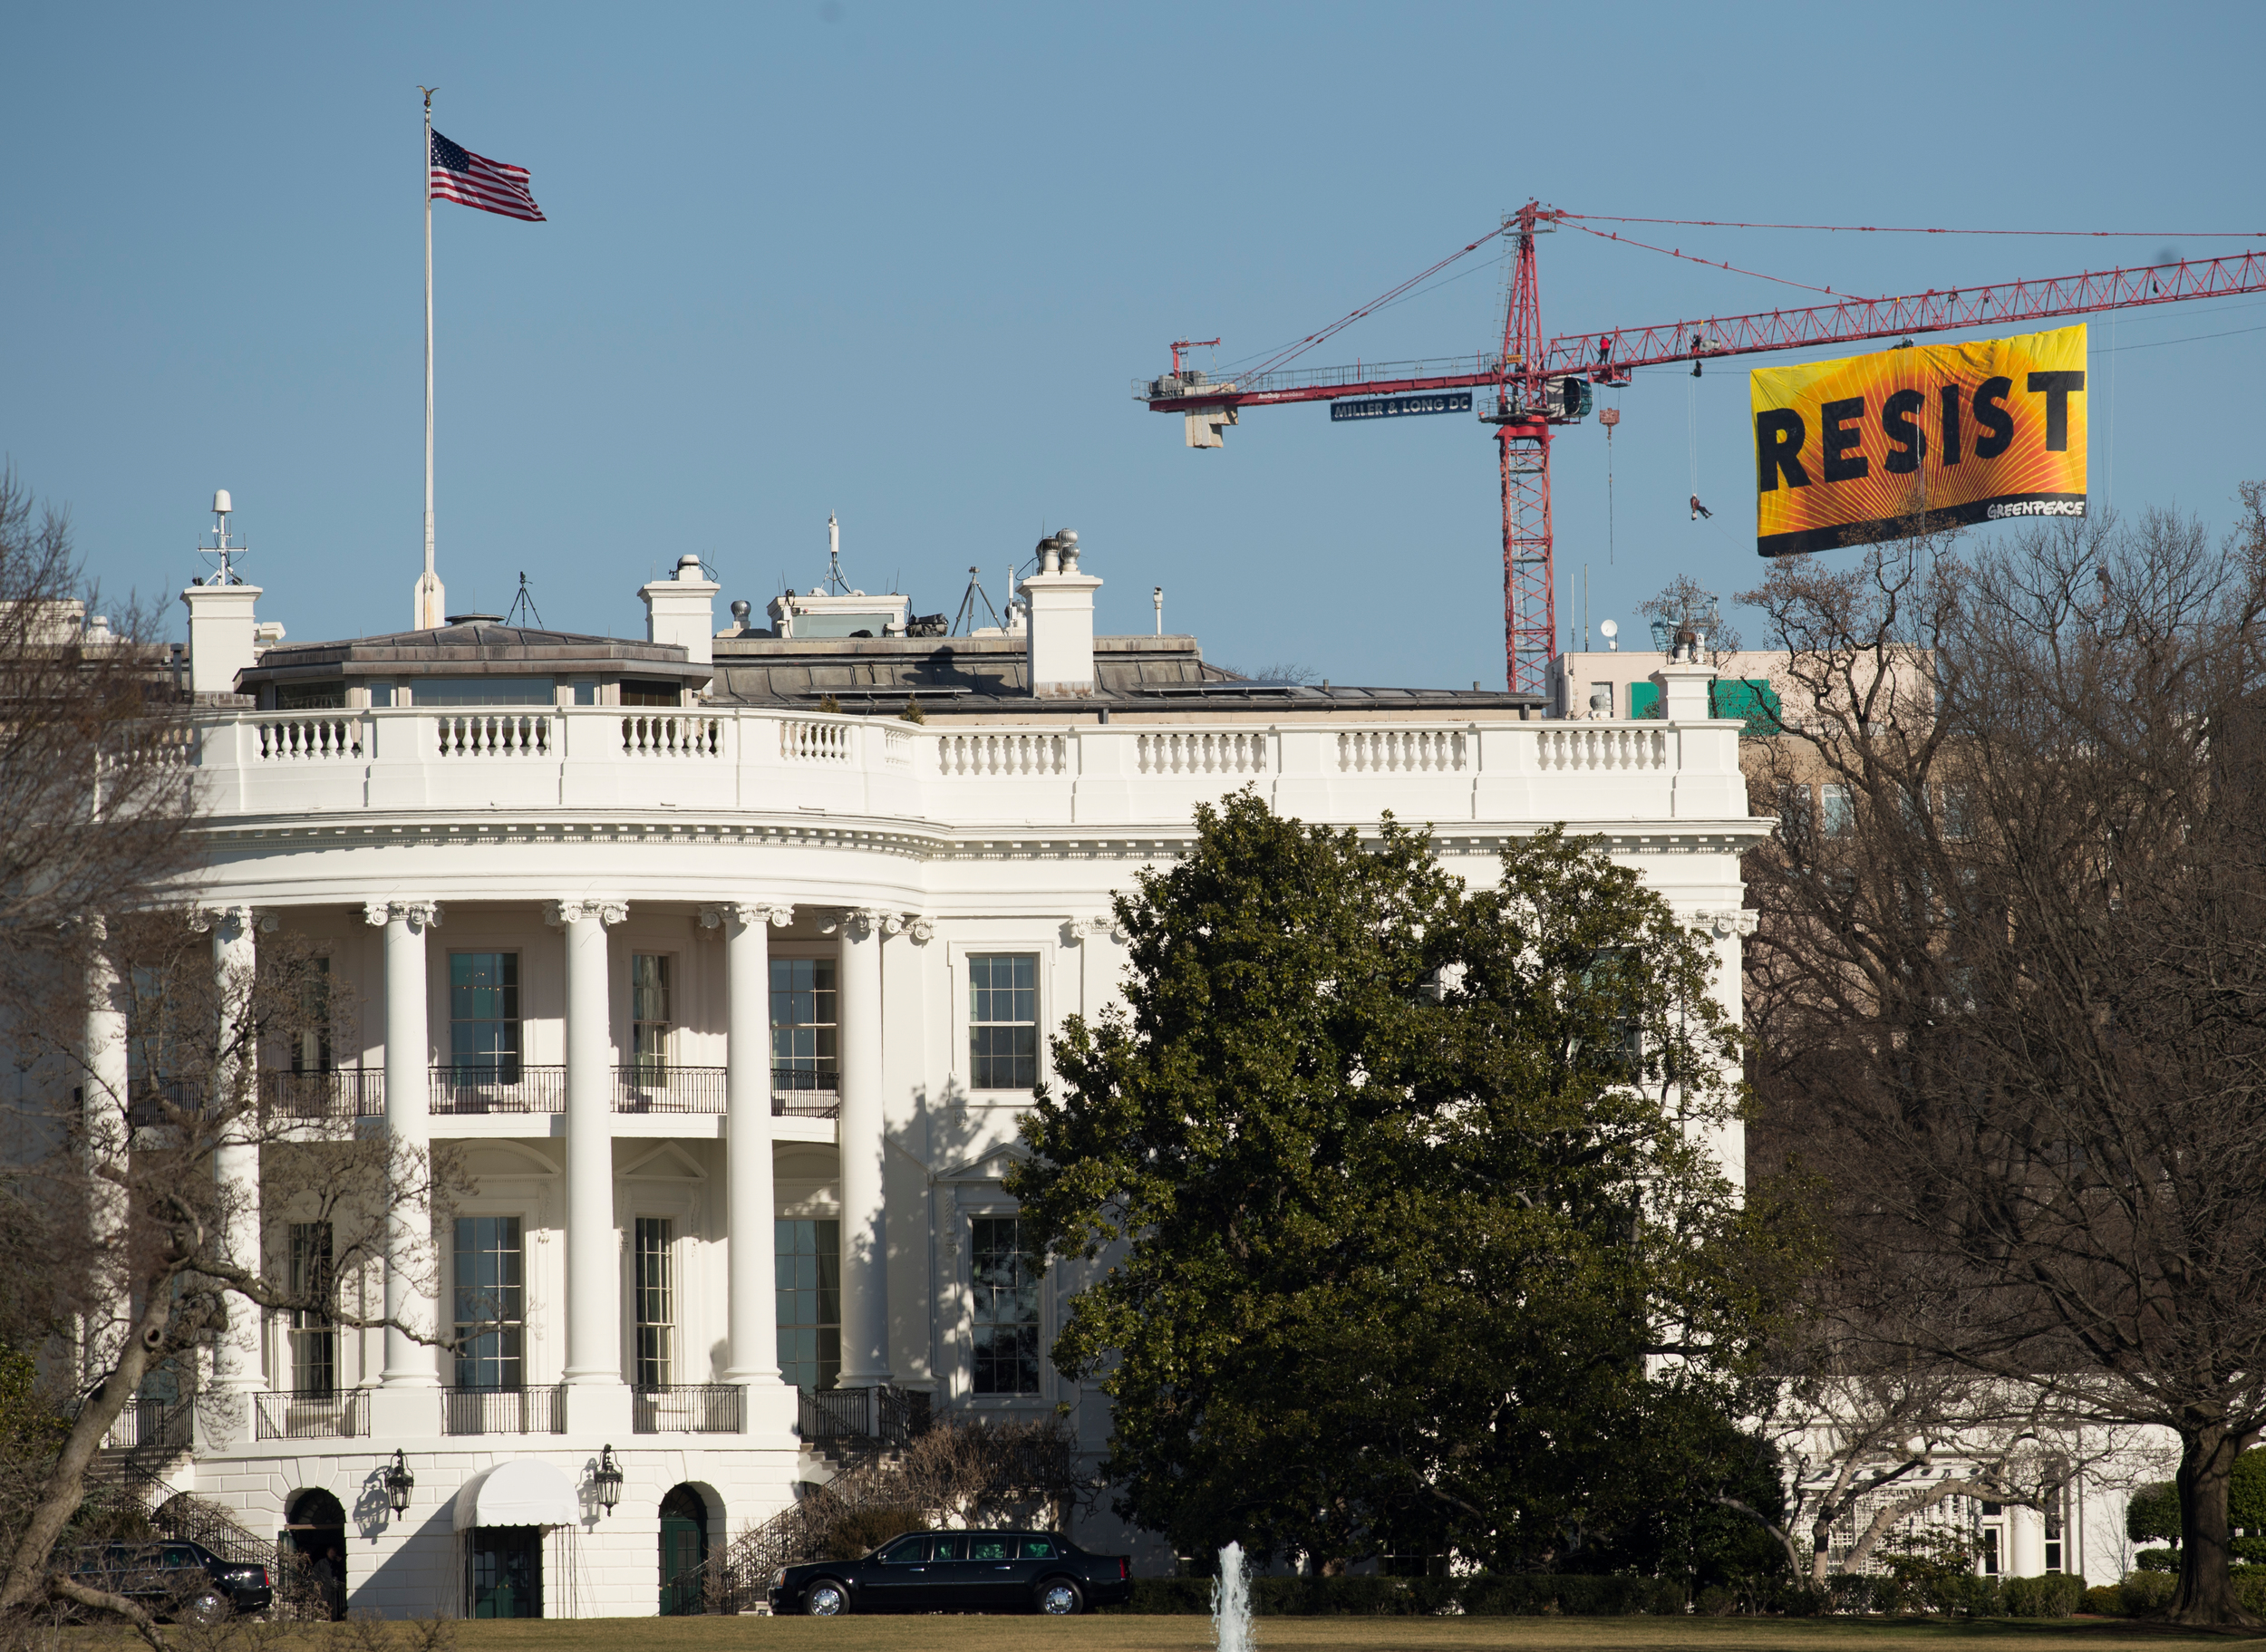 """PHOTO COURTESY GREENPEACE Seven Greenpeace activists were arrested last night around 10 p.m. for climbing a crane and hanging a banner with the word """"Resist"""" a few blocks from the White House to protest protest President Donald Trump's approval of the Keystone XL and Dakota Access pipelines, among other actions."""